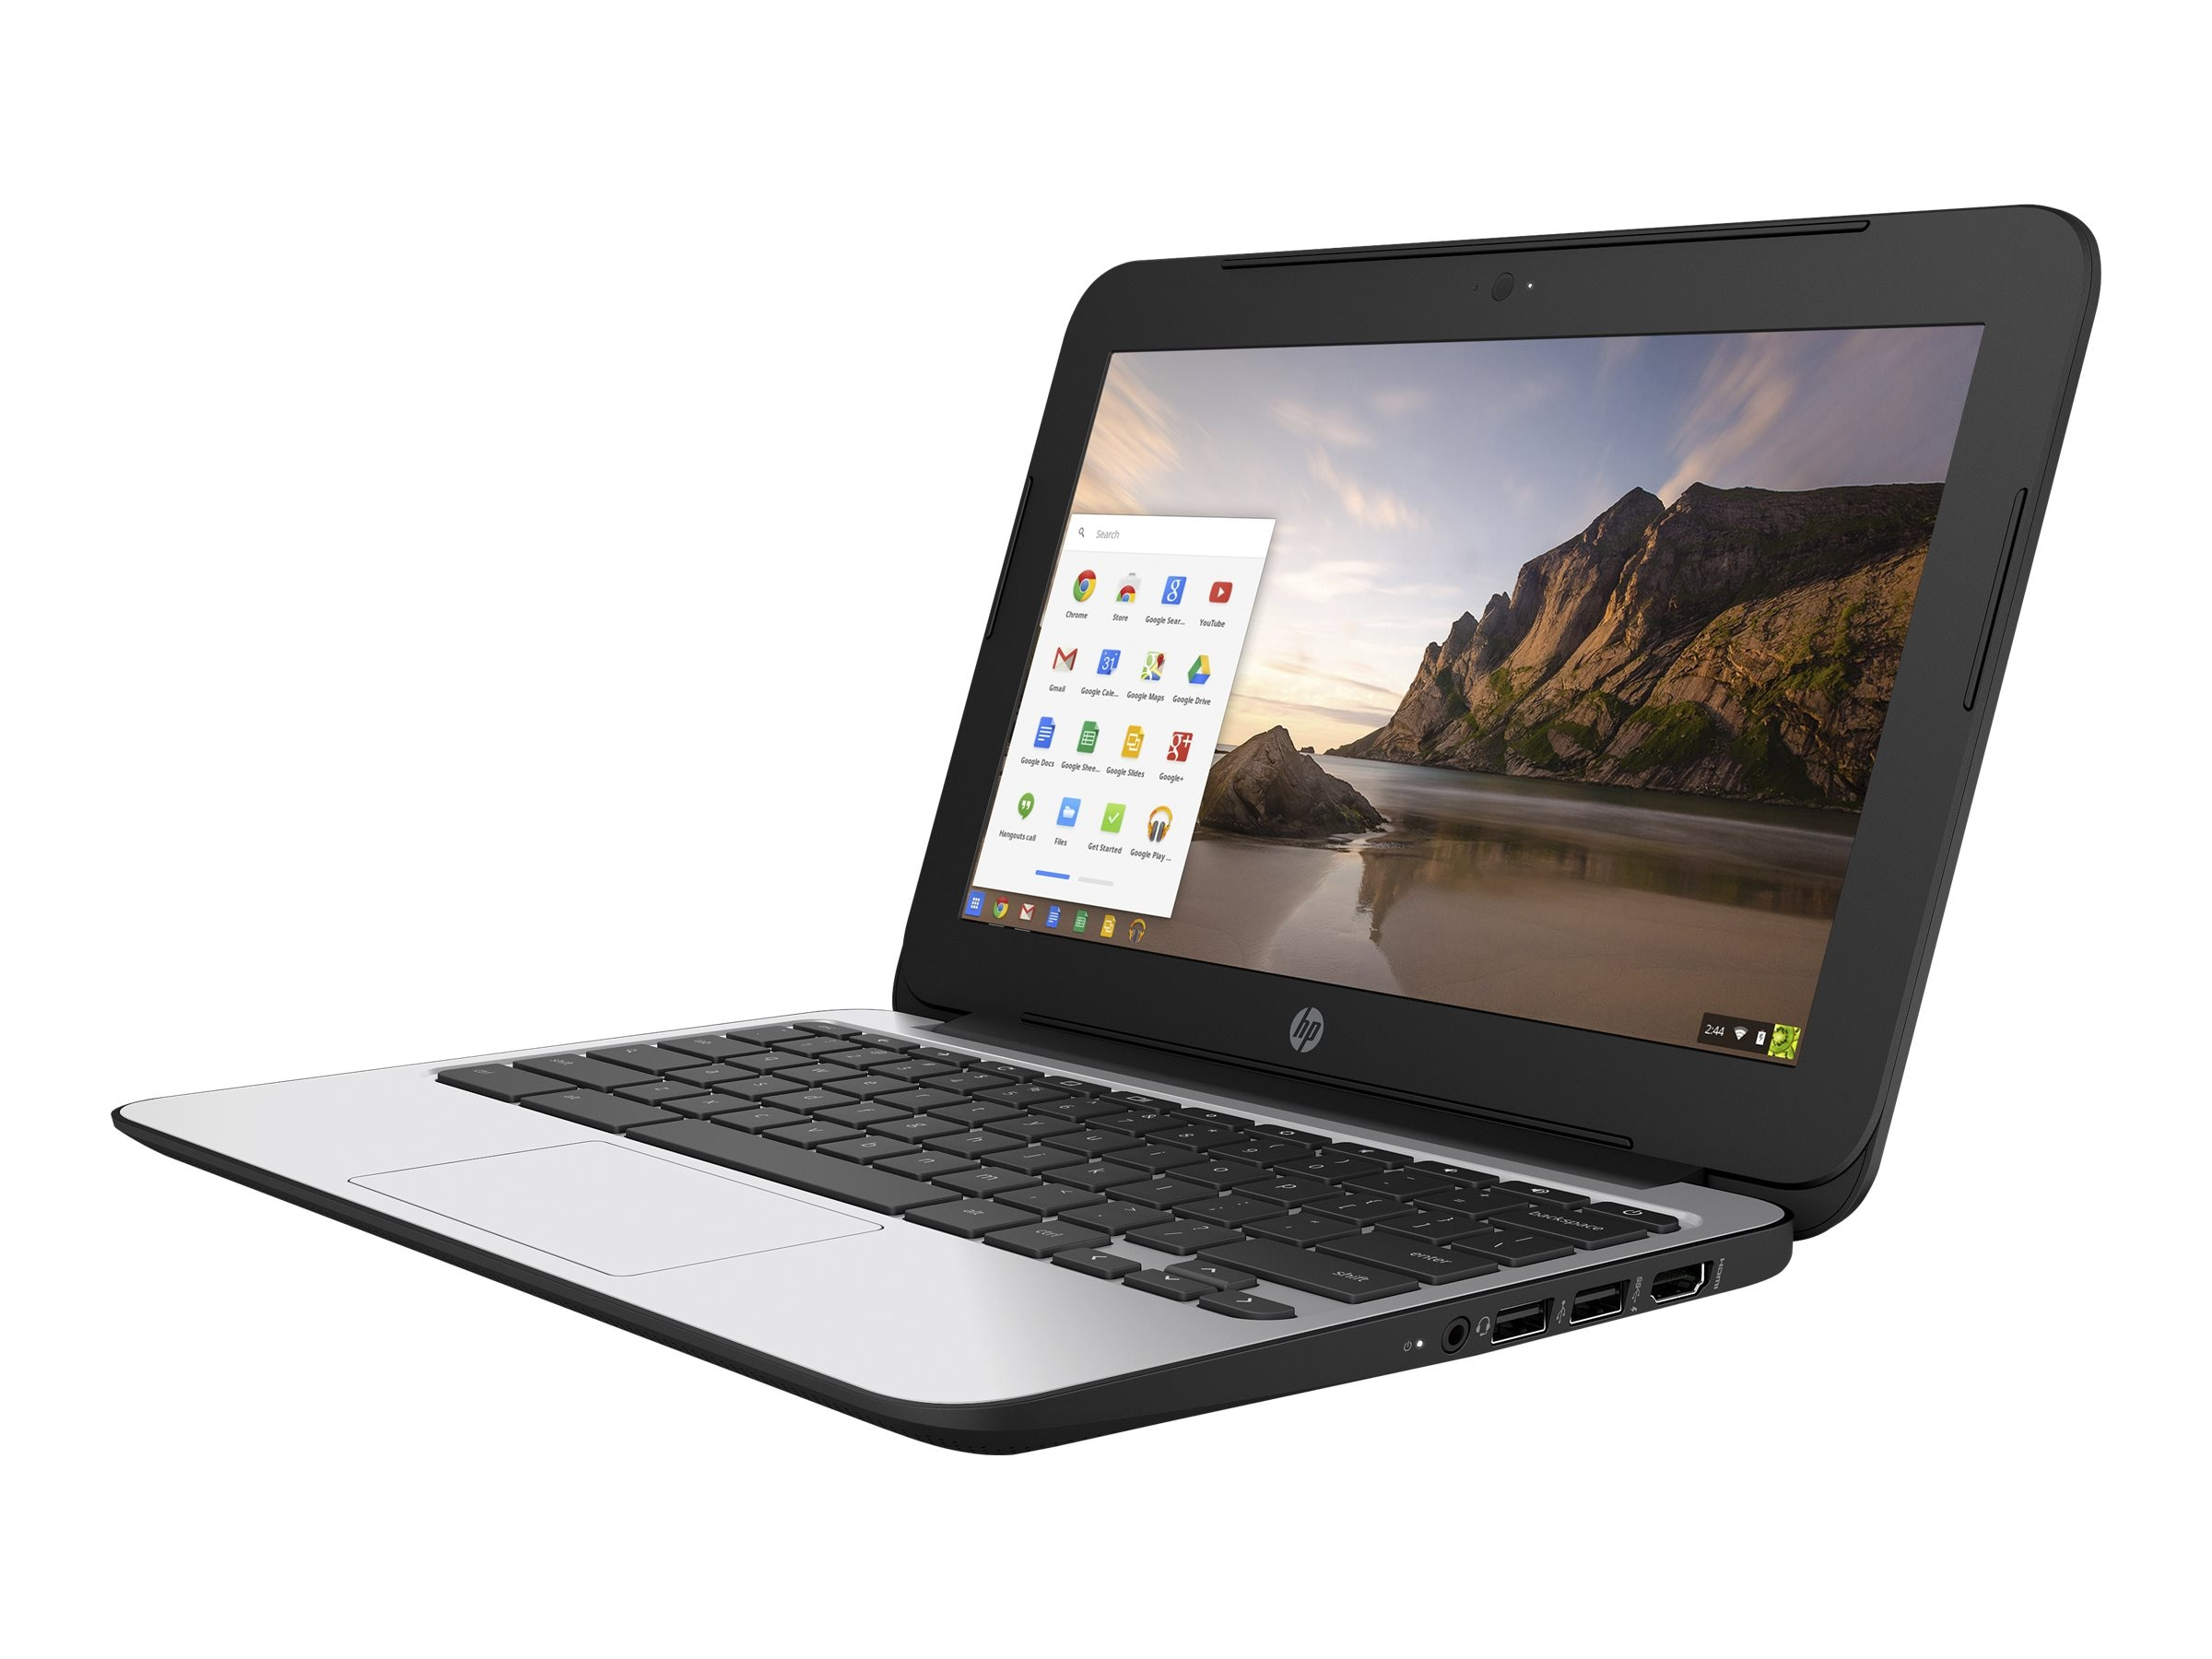 Open Box HP Chromebook 11 G4 Celeron N2840 2.16GHz 4GB 16GB ac abgn BT WC 3C 11.6 HD Chrome